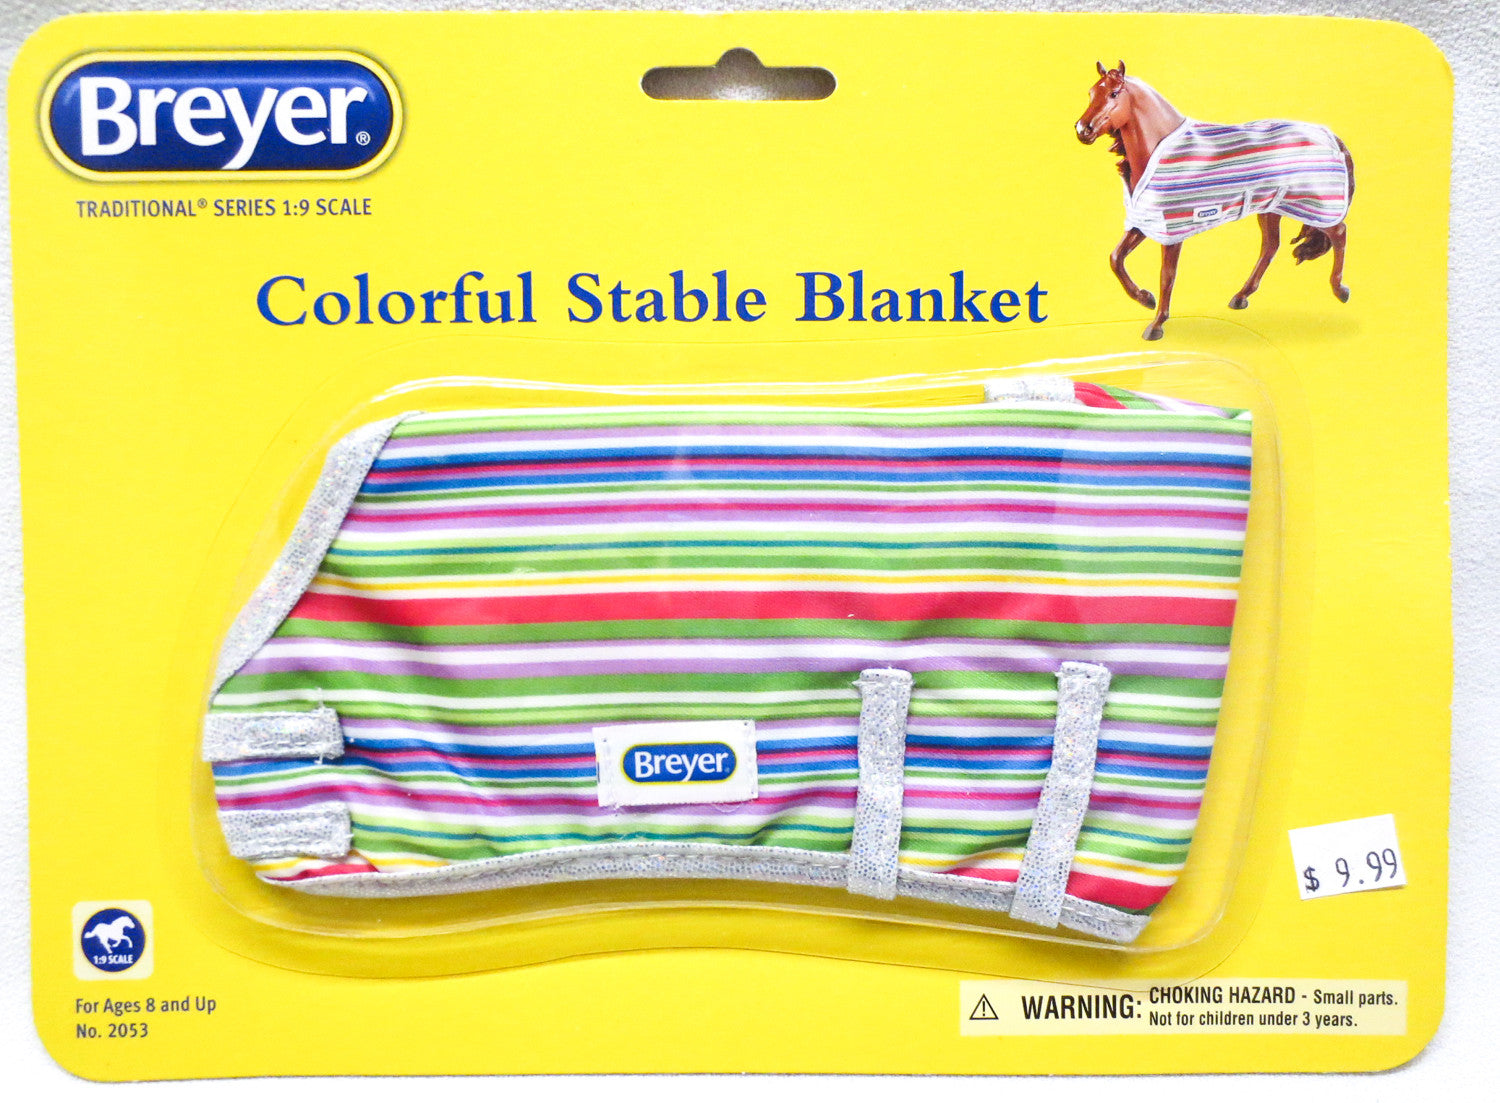 Breyer Colorful Stable Blanket Your Choice Of Patterns Triple Mountain Model Horses